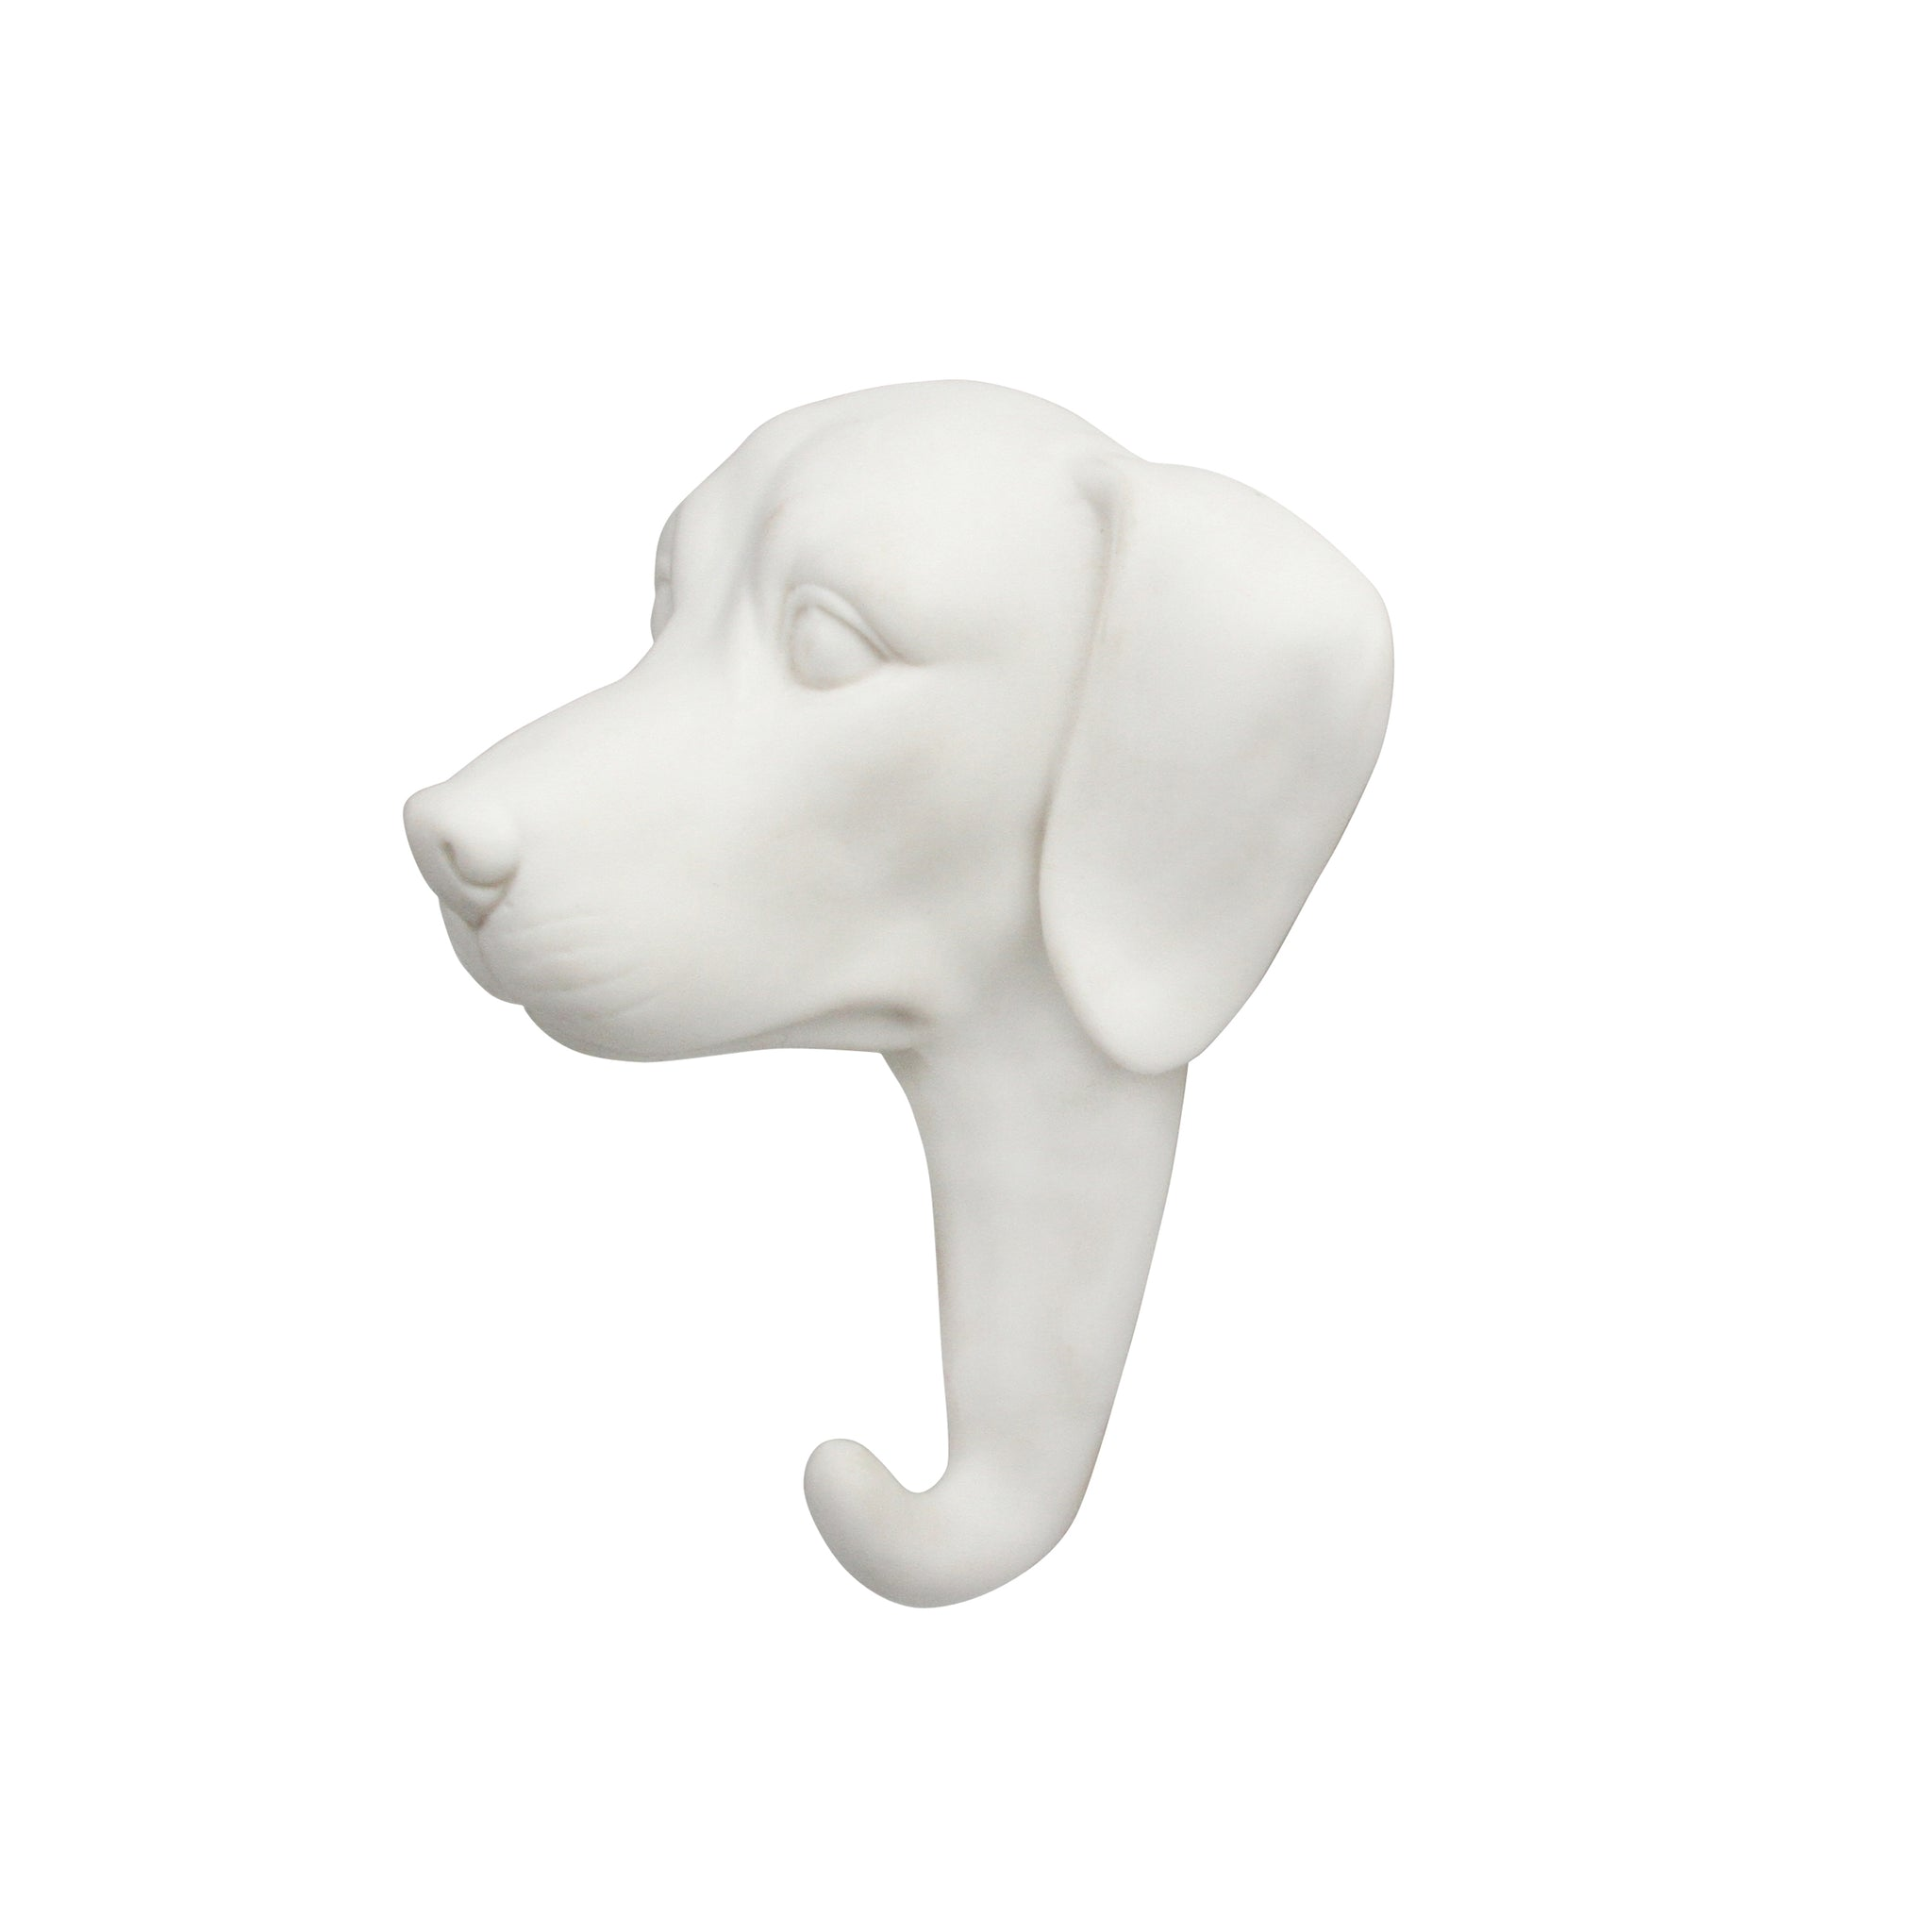 Porcelain Dog Hanger